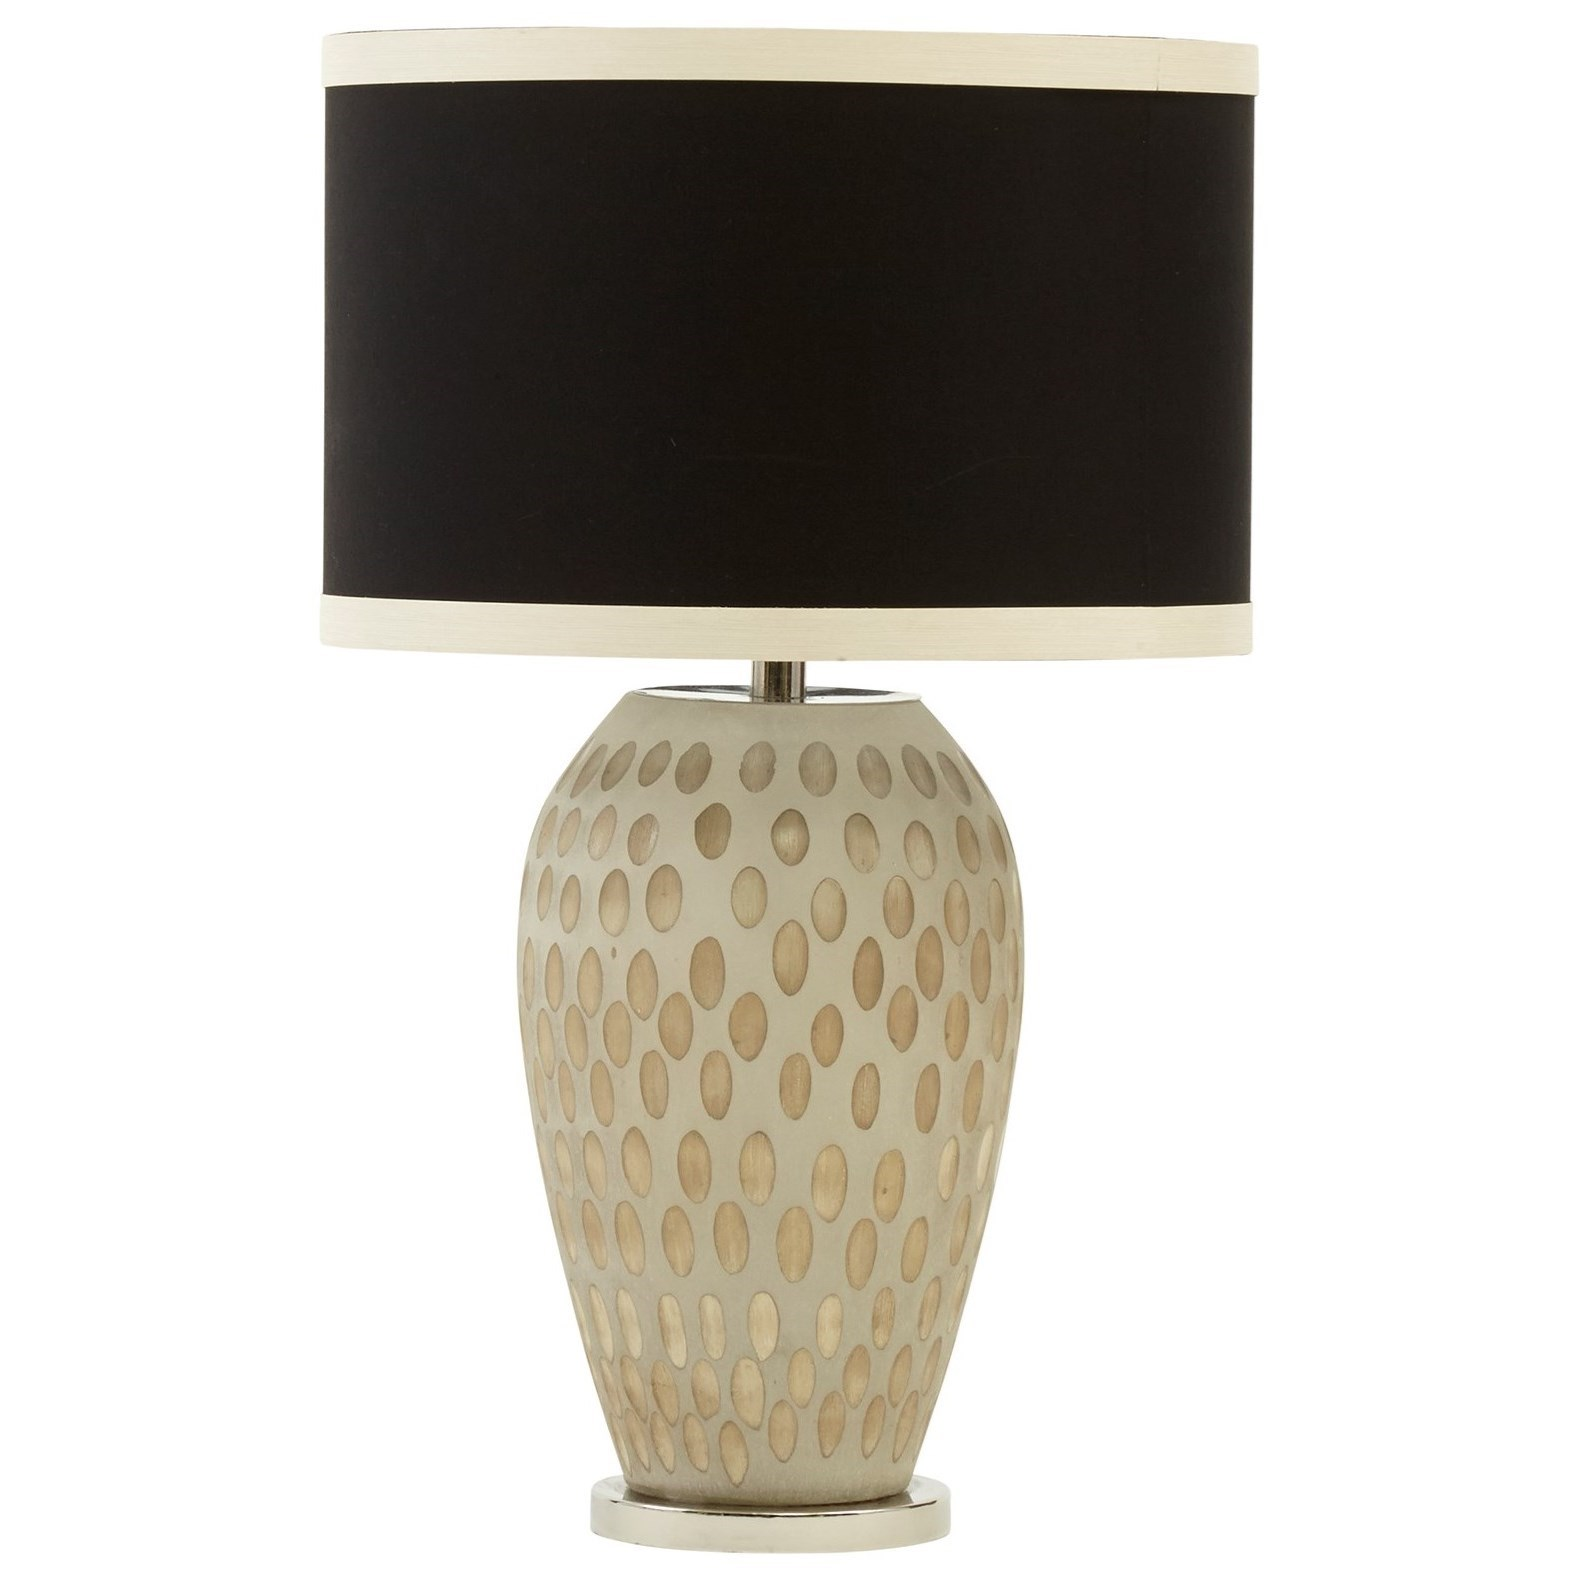 Stein World Lamps Thumba Table Lamp Story Amp Lee Furniture Table Lamps